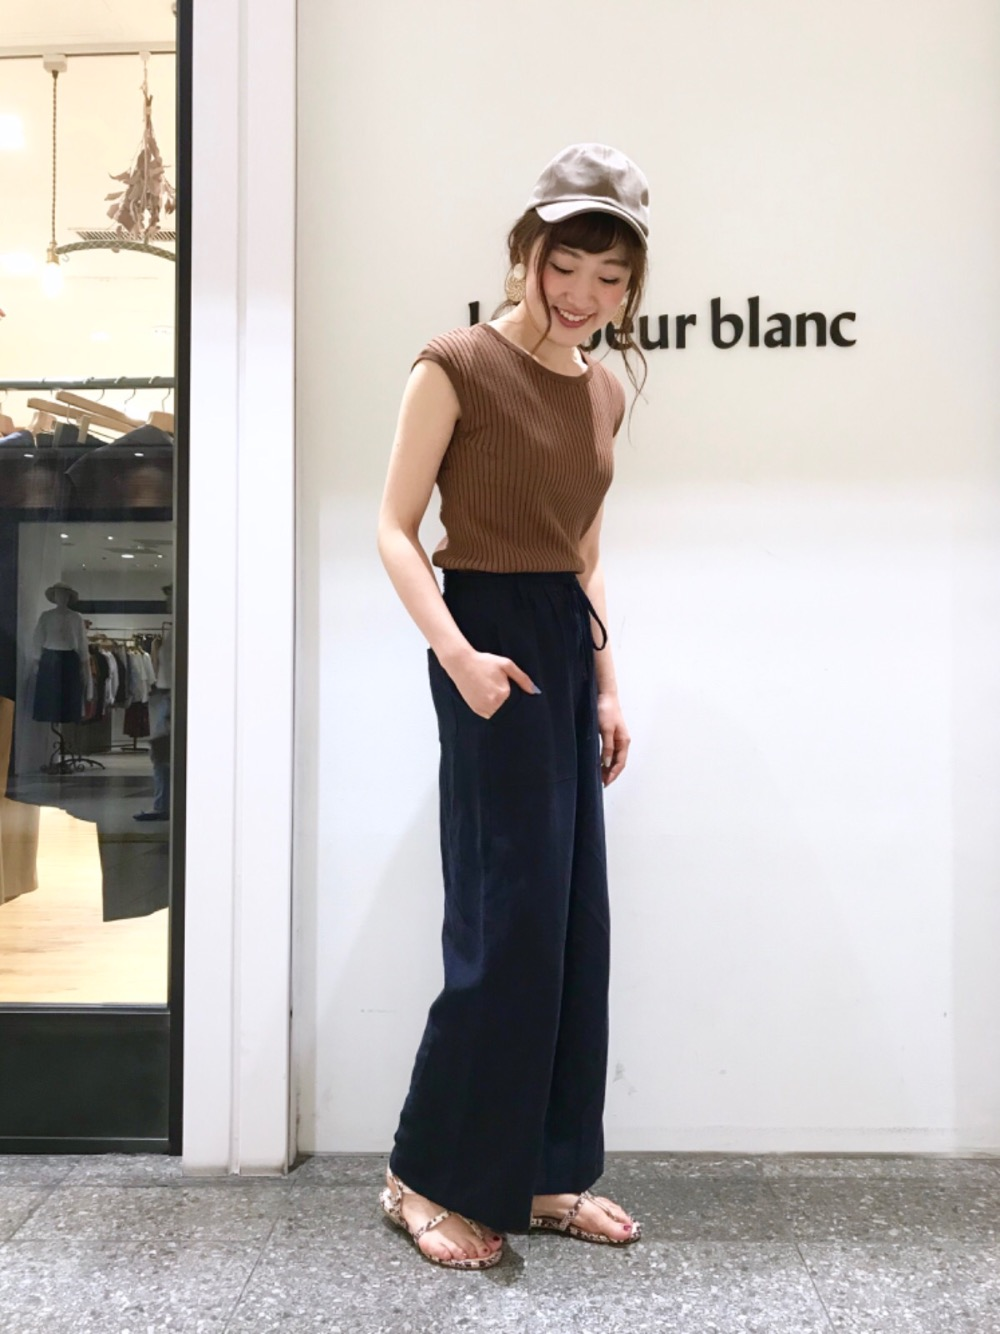 le.coeur blanc名古屋セントラルパーク店